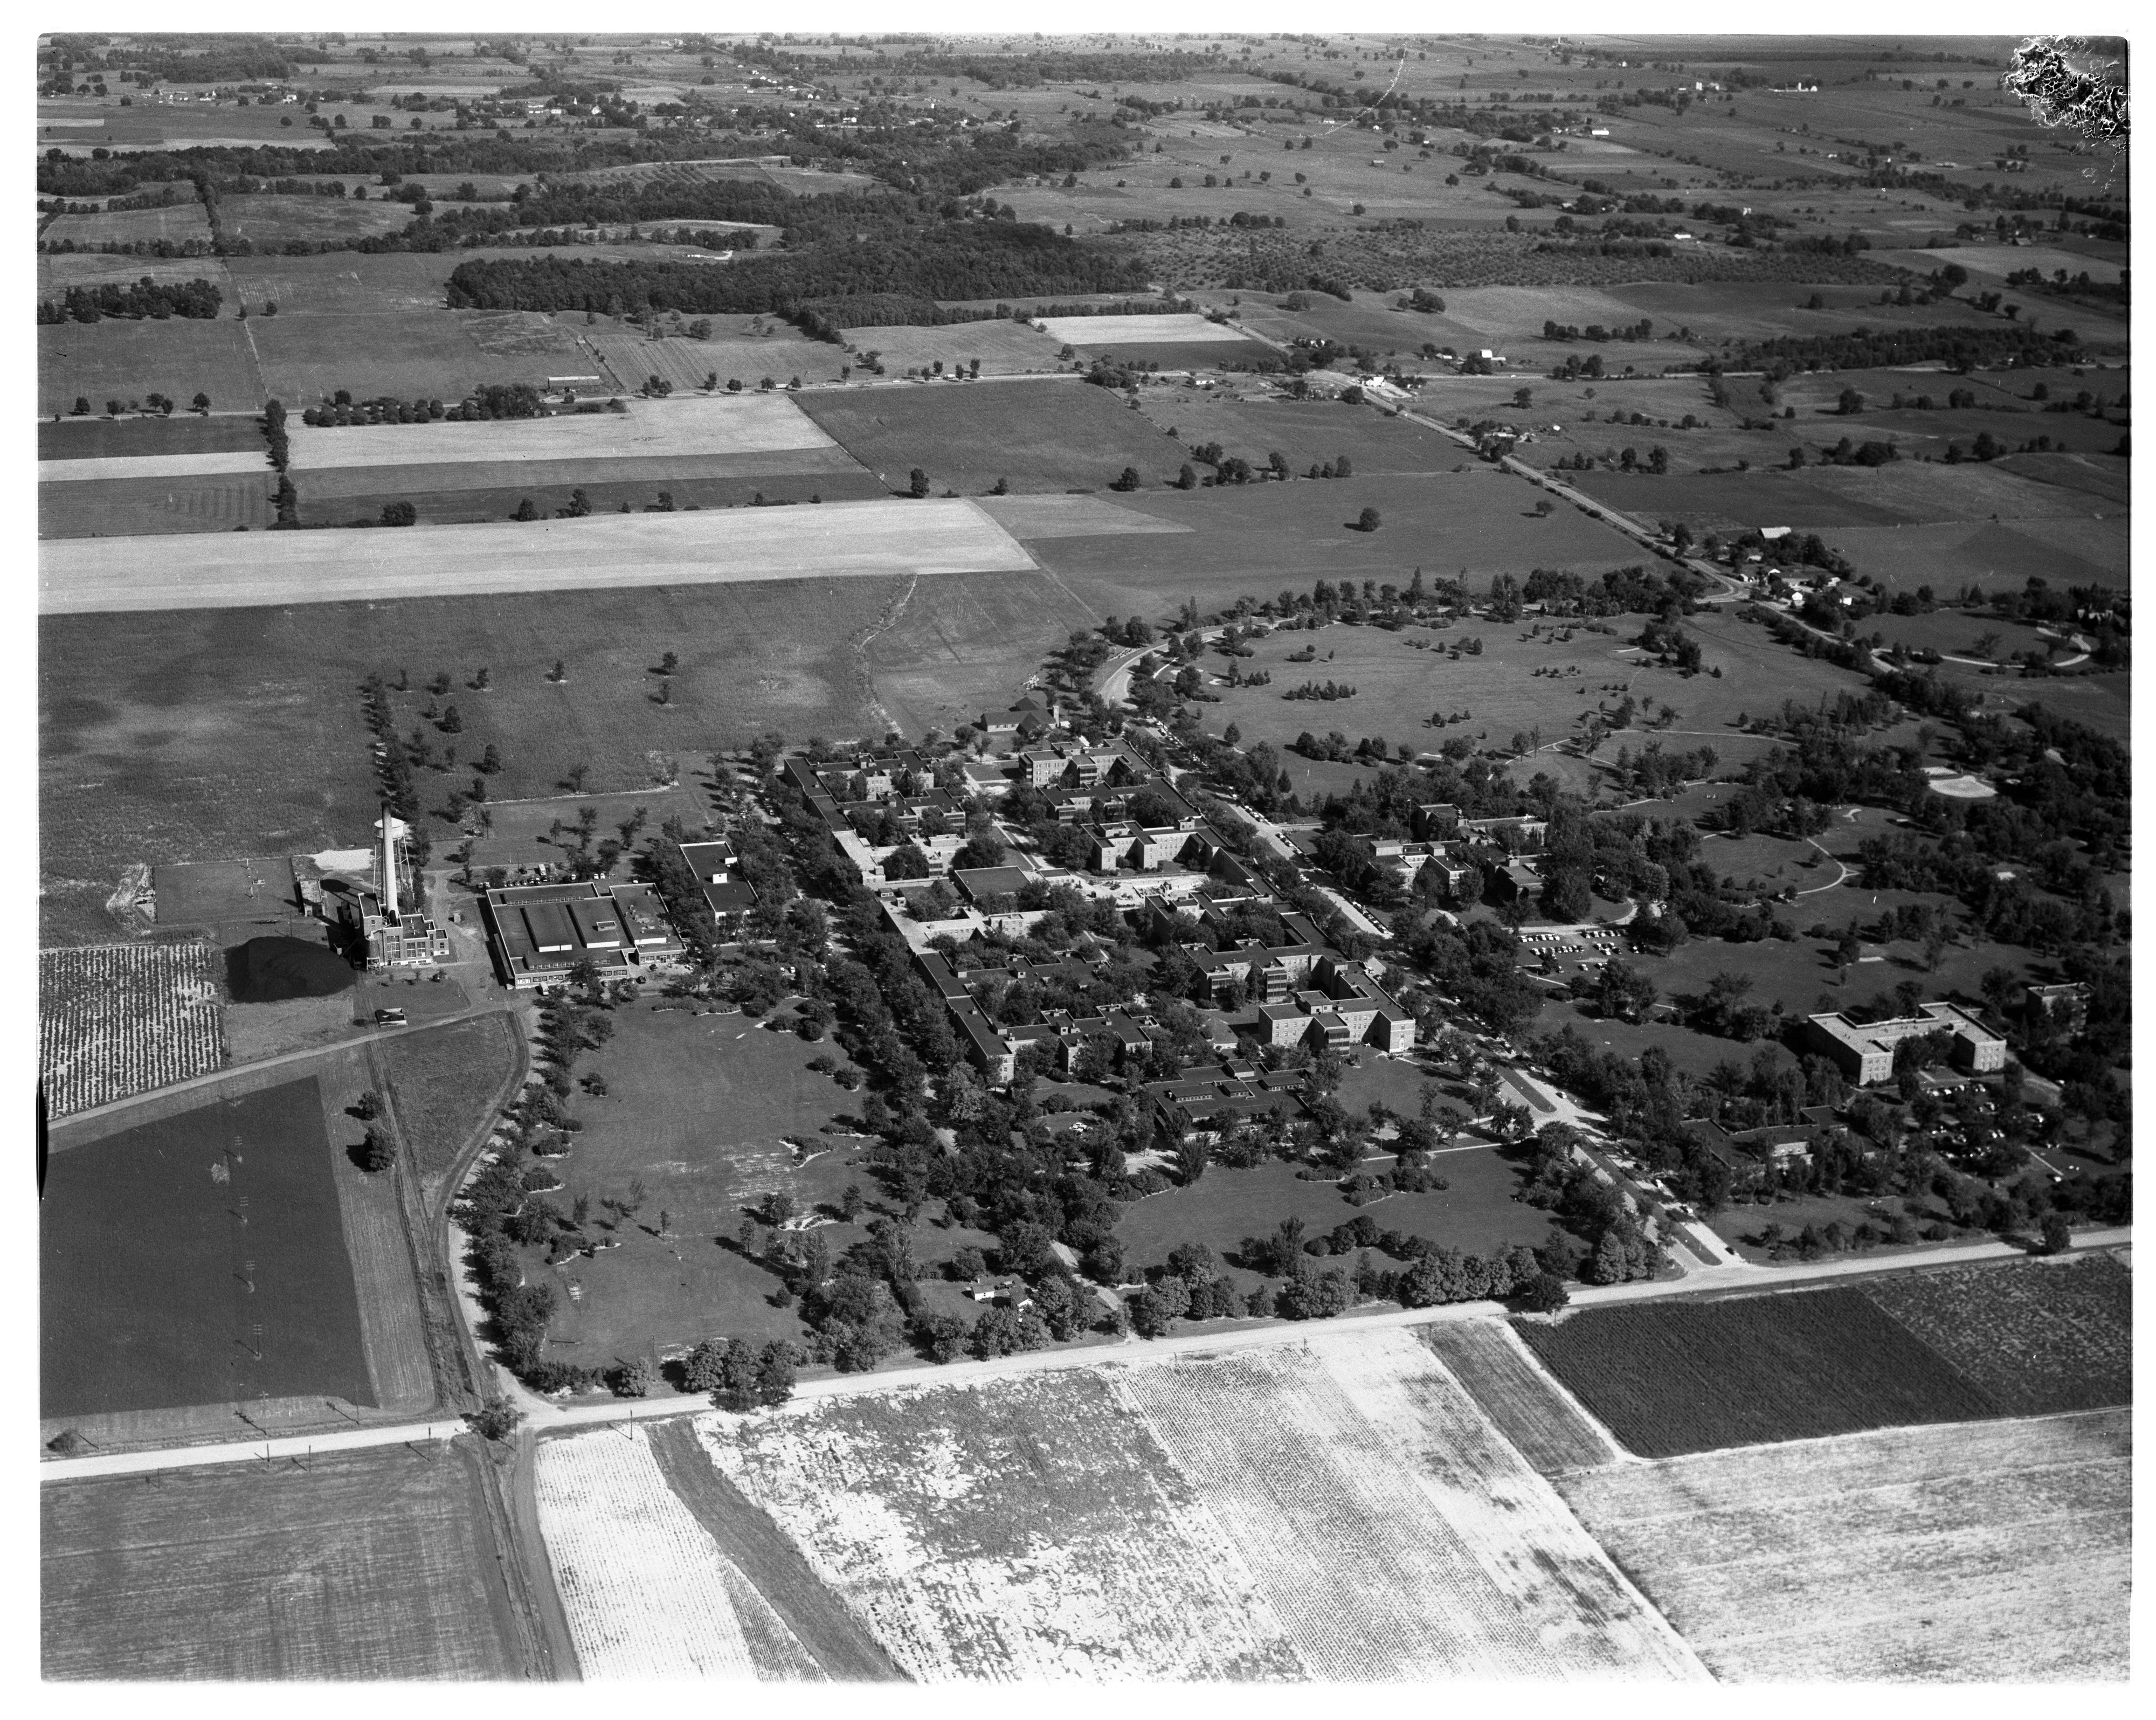 Aerial Photograph of the Ypsilanti State Hospital, York Township, September 1956 image